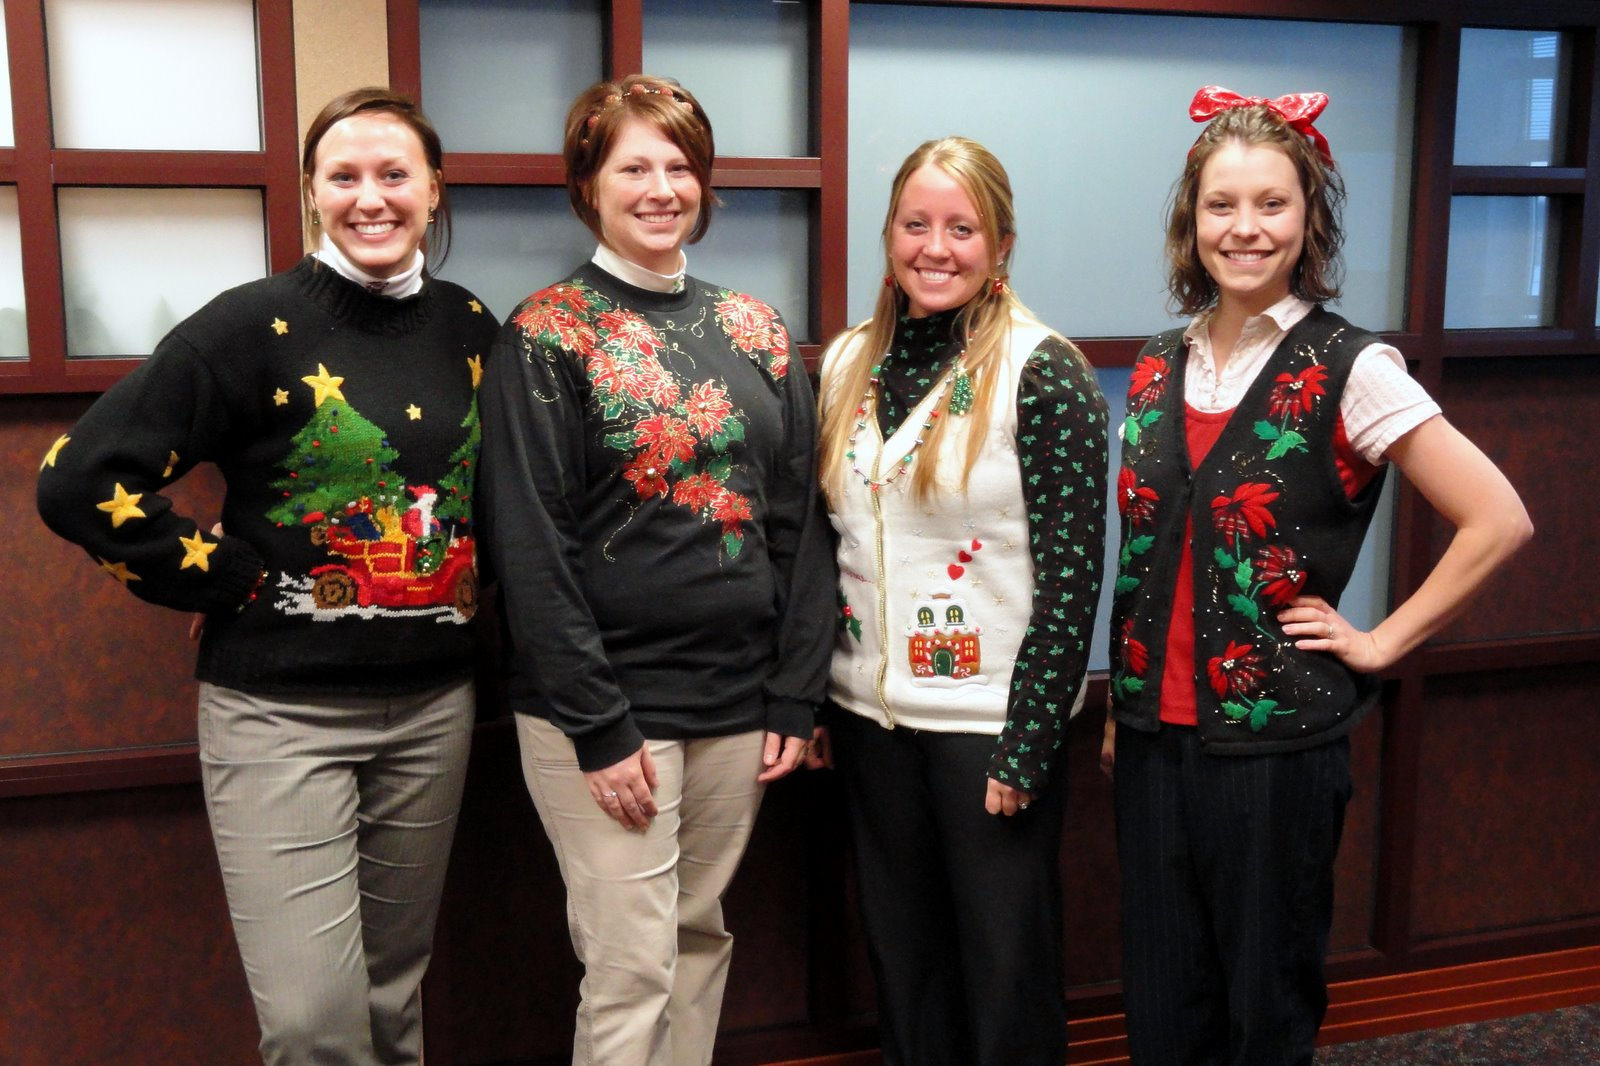 today was optional participation ugly sweater snack day at the office or opus a few of my co workers got into the spirit and sported some pretty